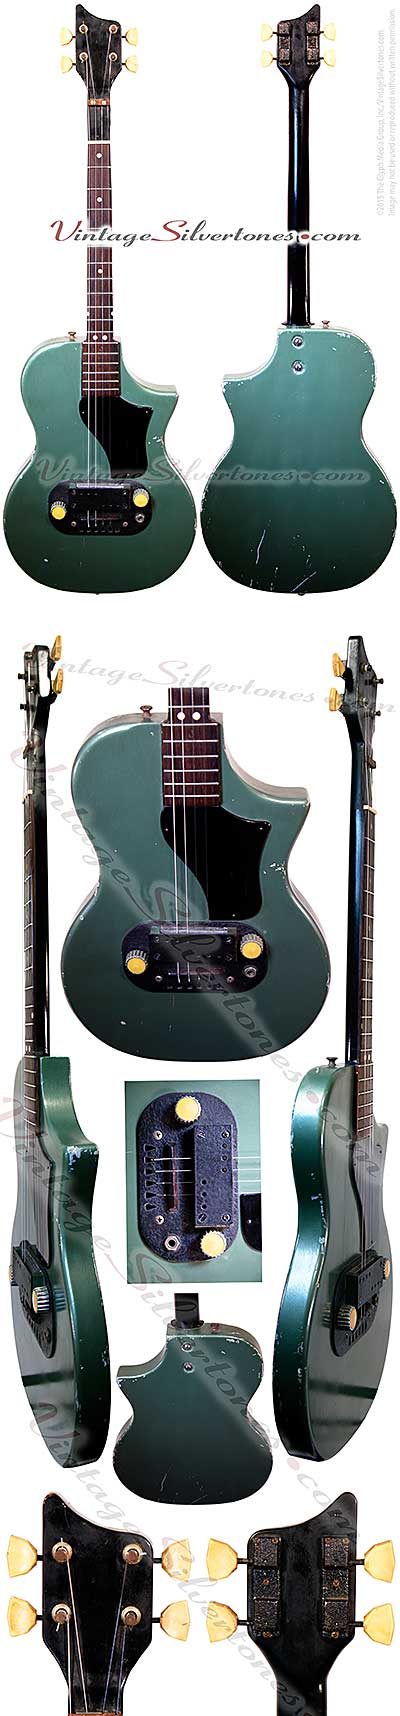 Supro tenor green-made in the USA